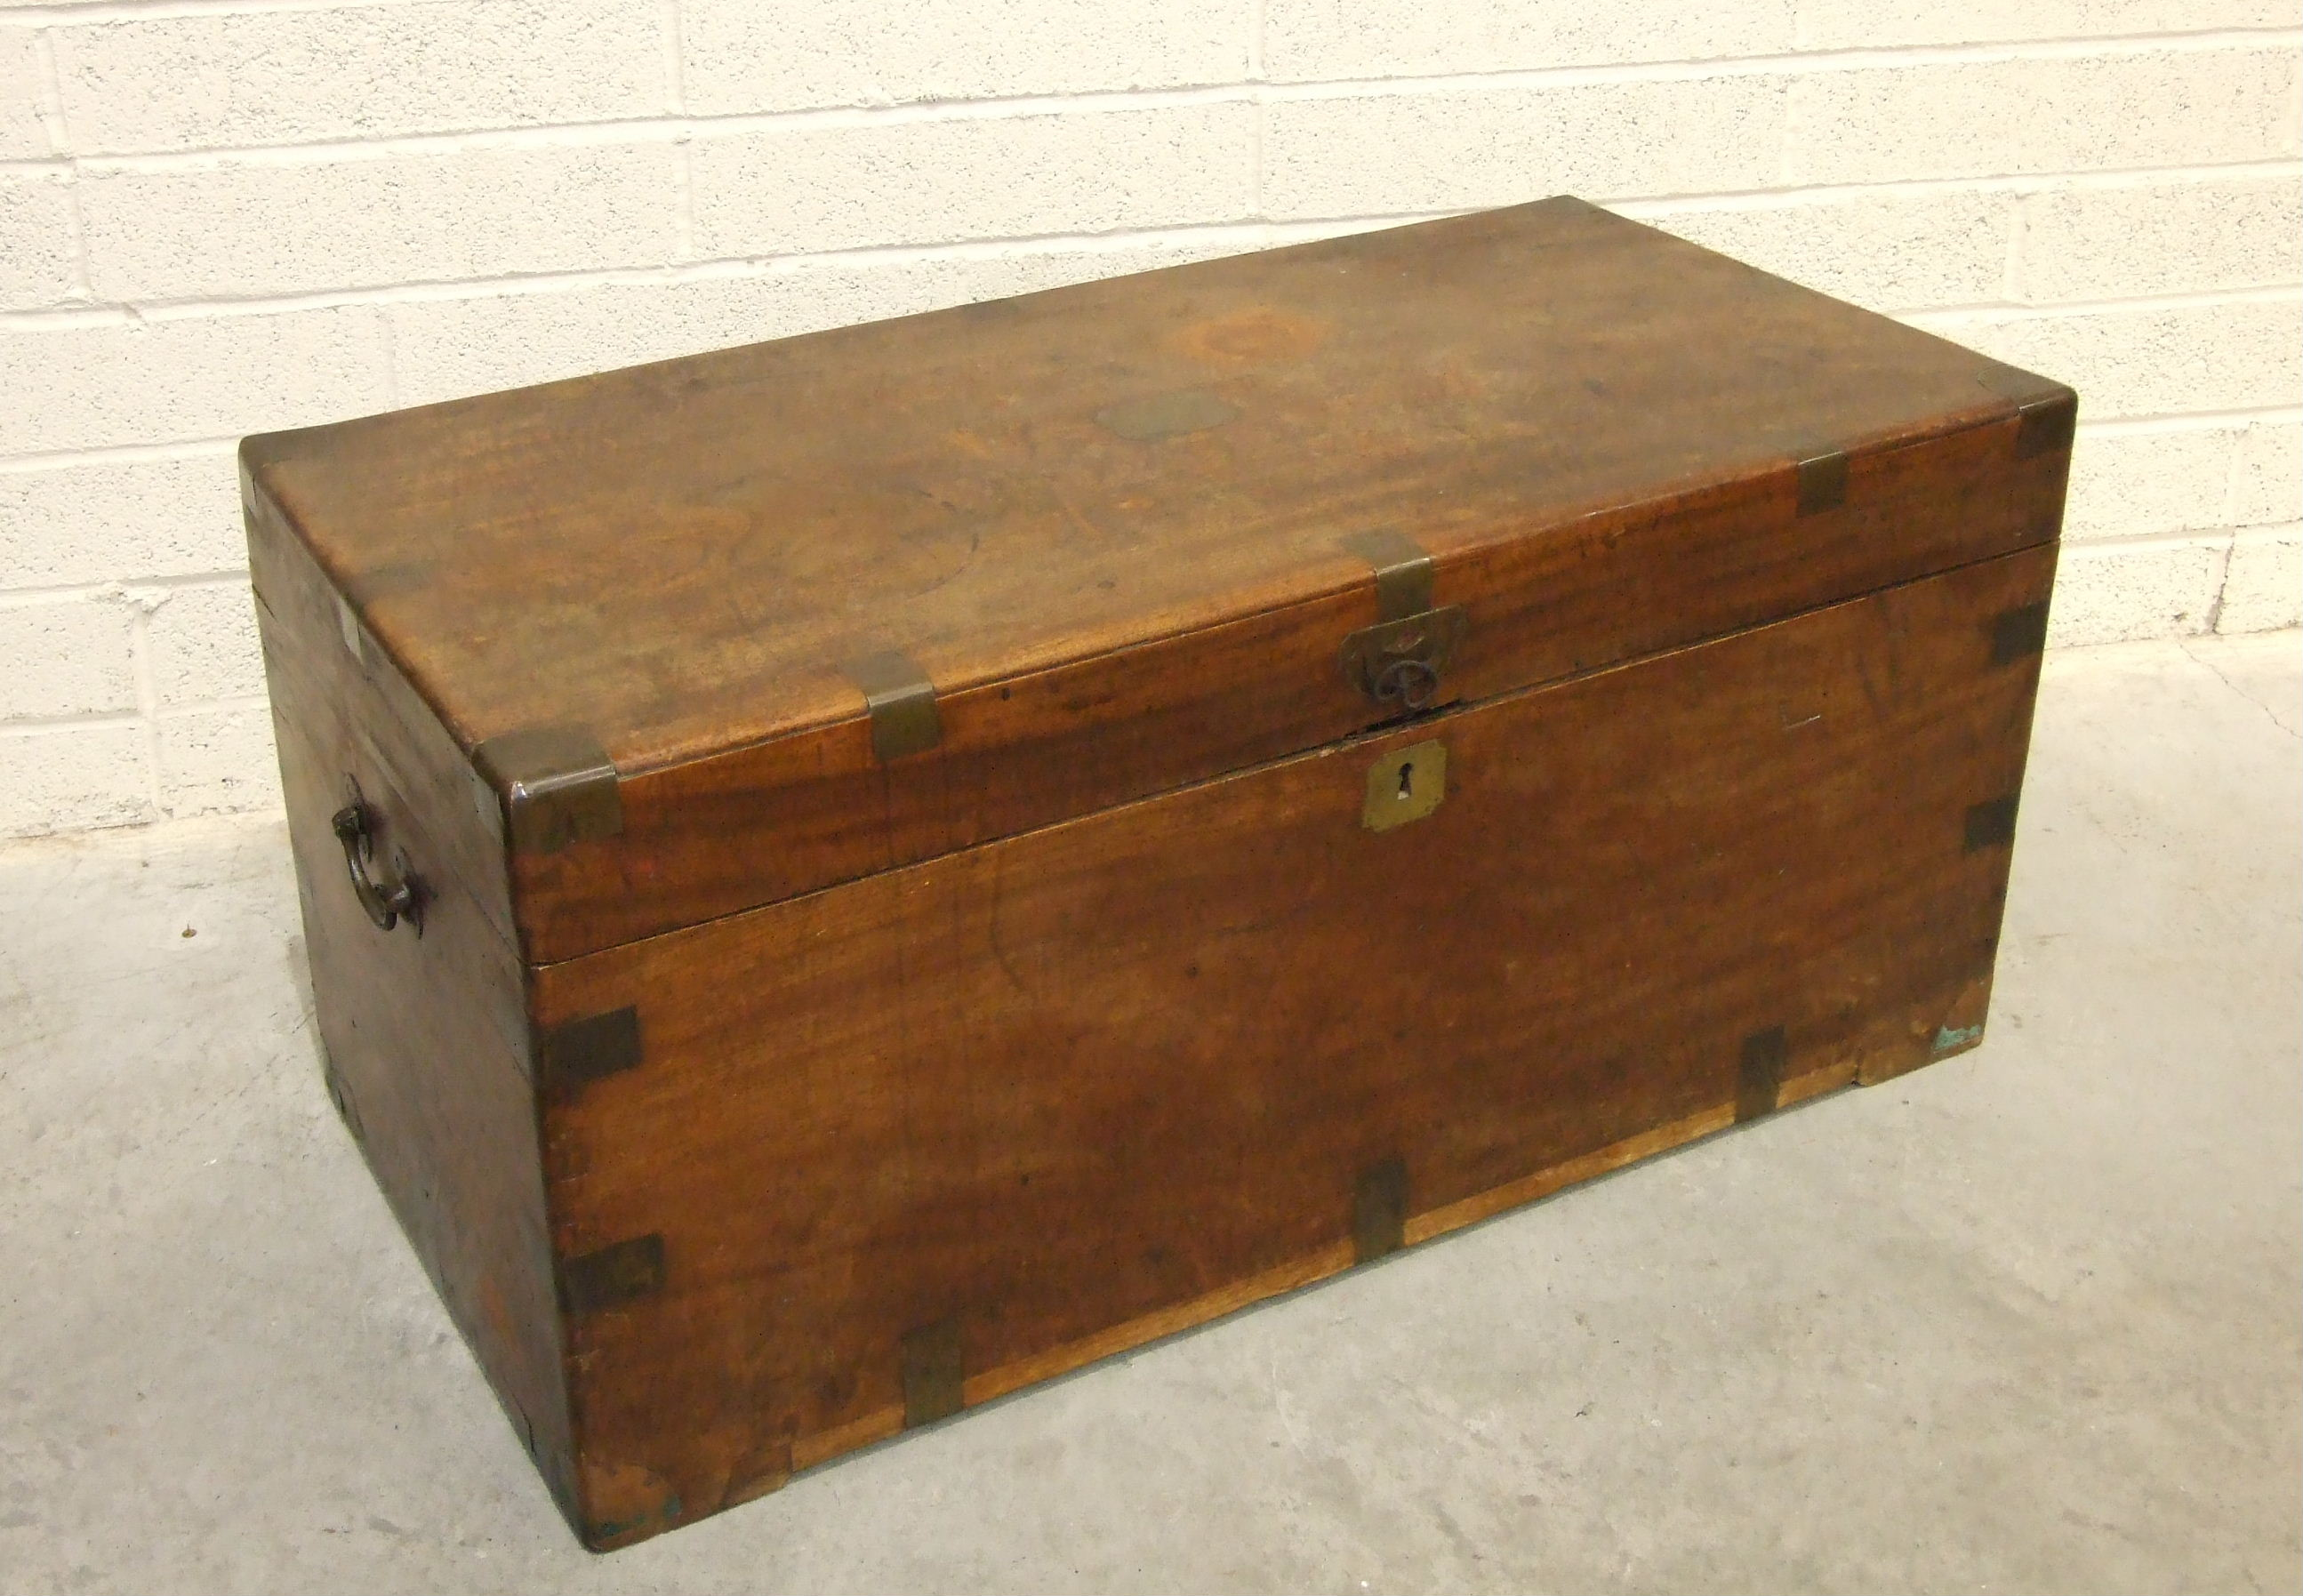 Lot 62 - A Victorian teak brass-bound blanket chest with intermediate and corner bindings, 104cm wide, 49cm